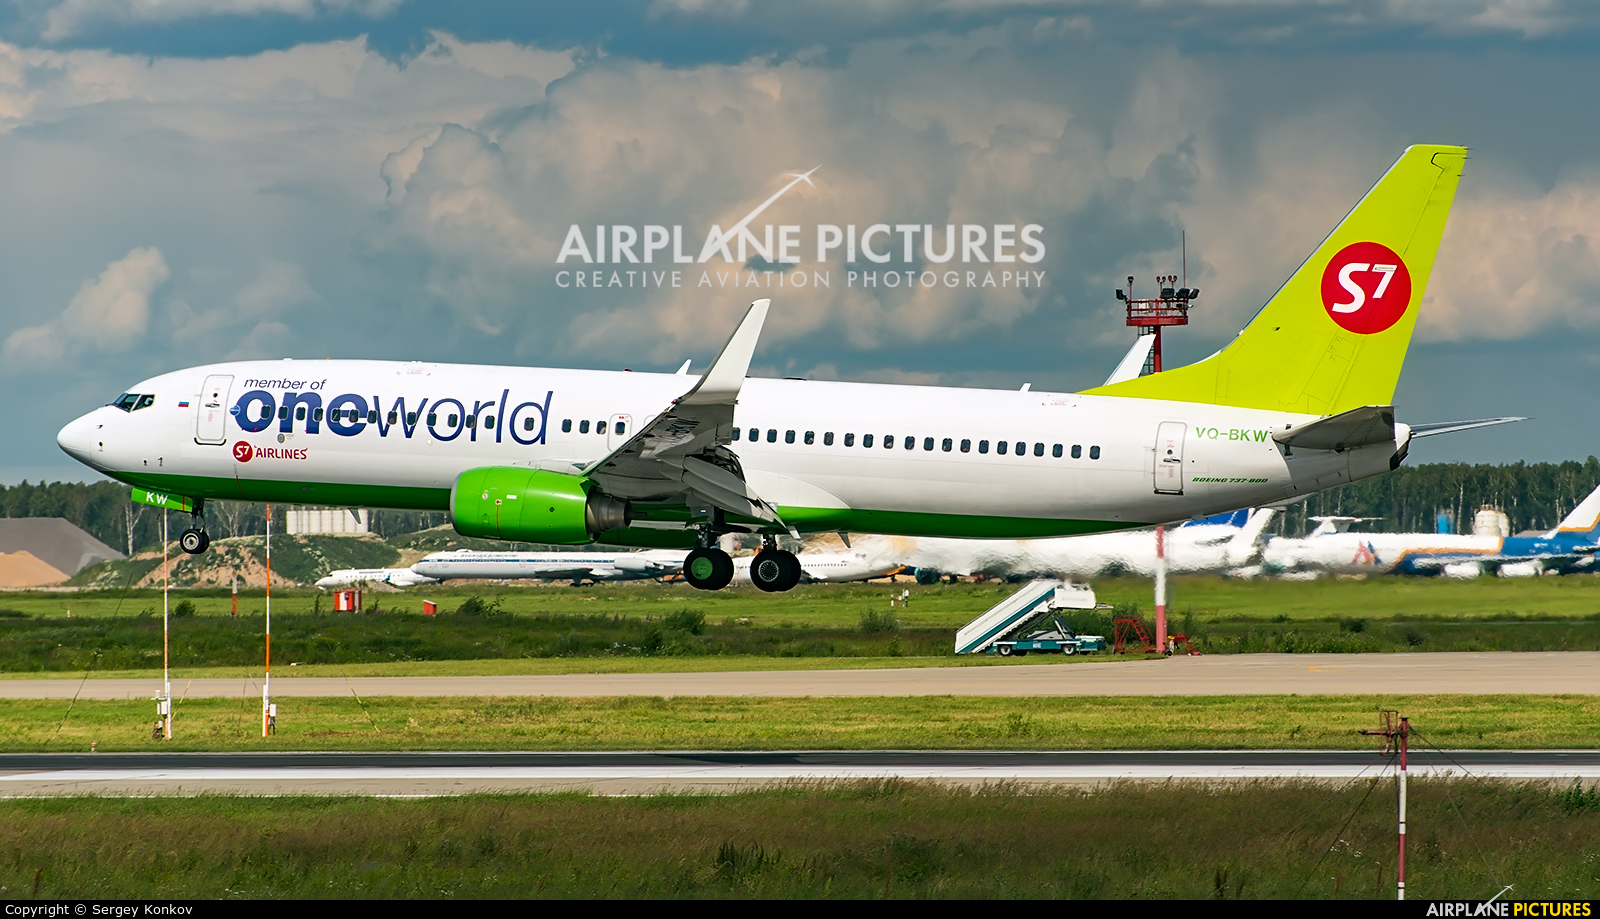 S7 Airlines VQ-BKW aircraft at Moscow - Domodedovo